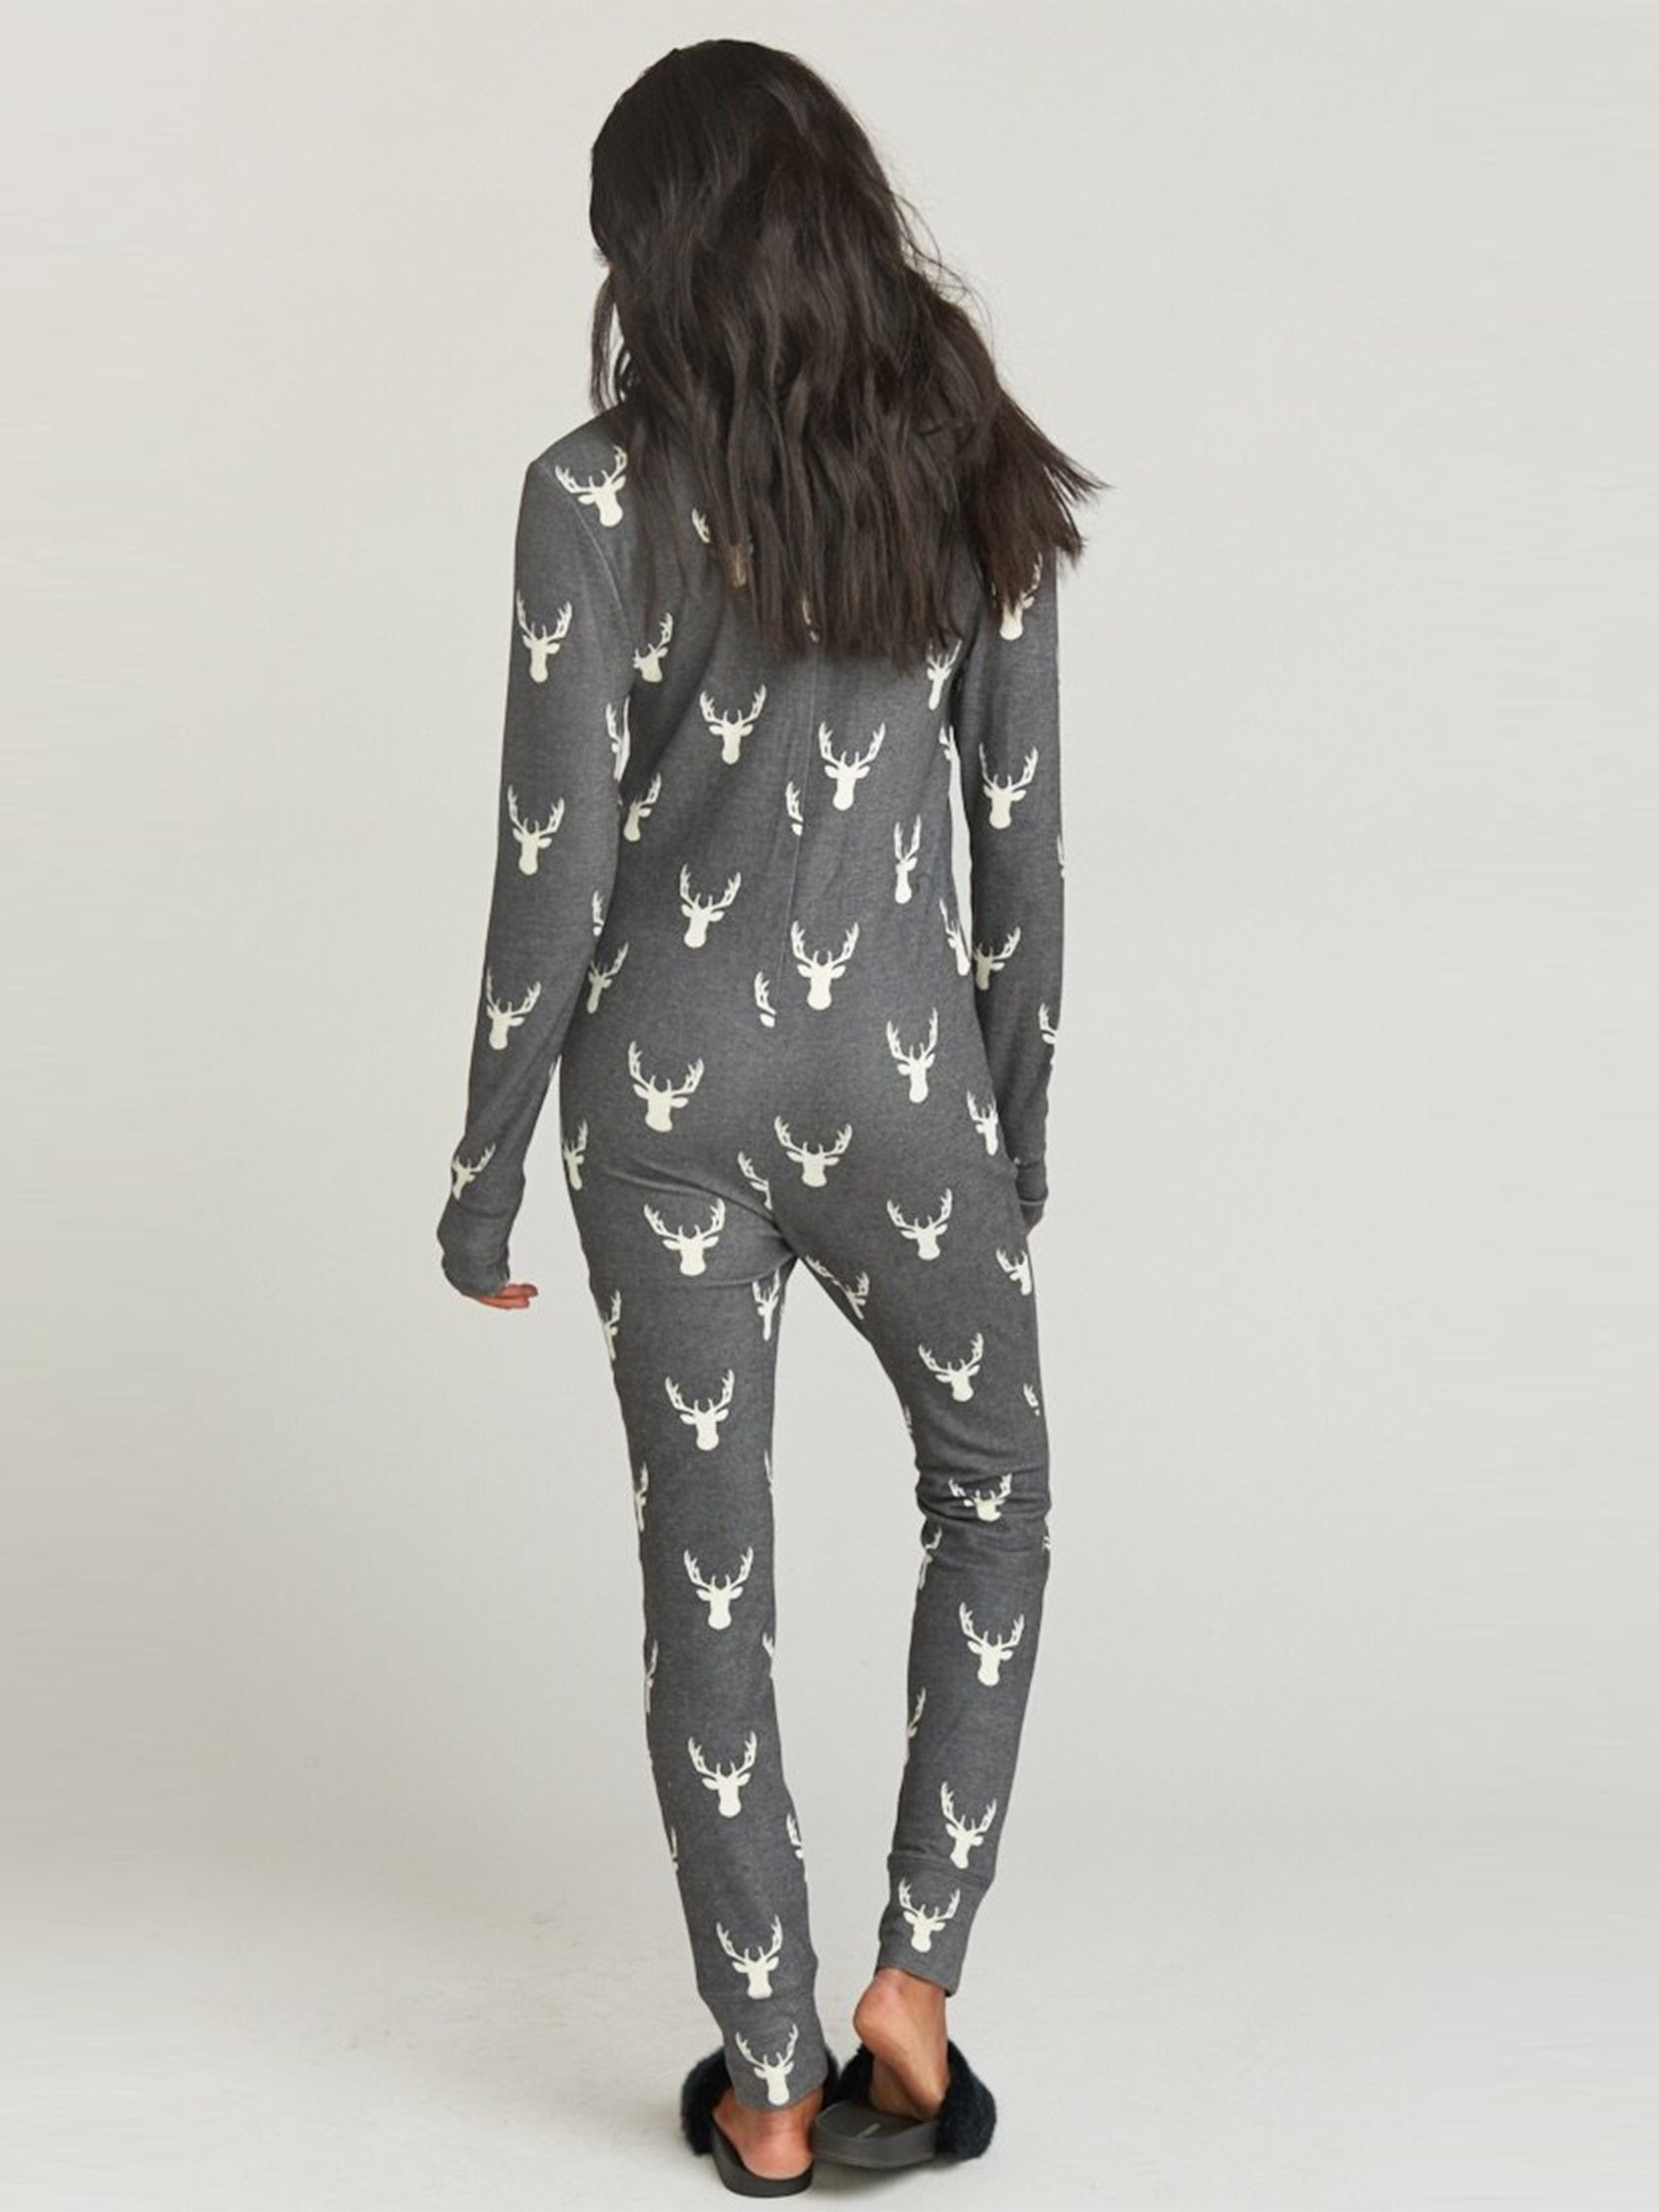 Women outfit in a pajamas rental from Show Me Your Mumu called Sleepy Time Onesie